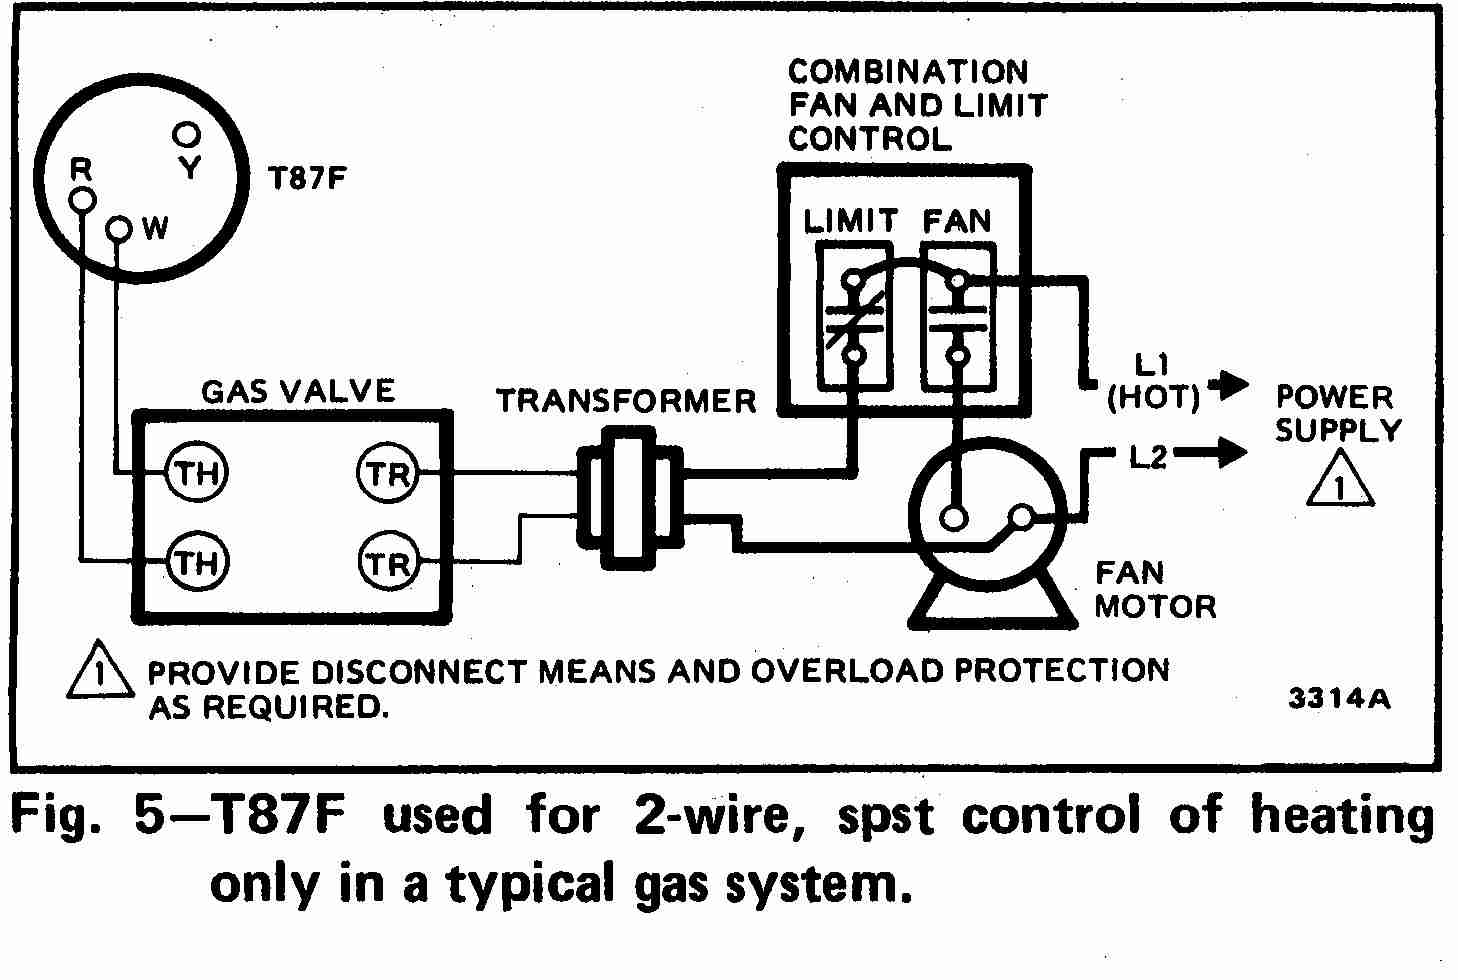 TT_T87F_0002_2Wg_DJF guide to wiring connections for room thermostats  at gsmx.co